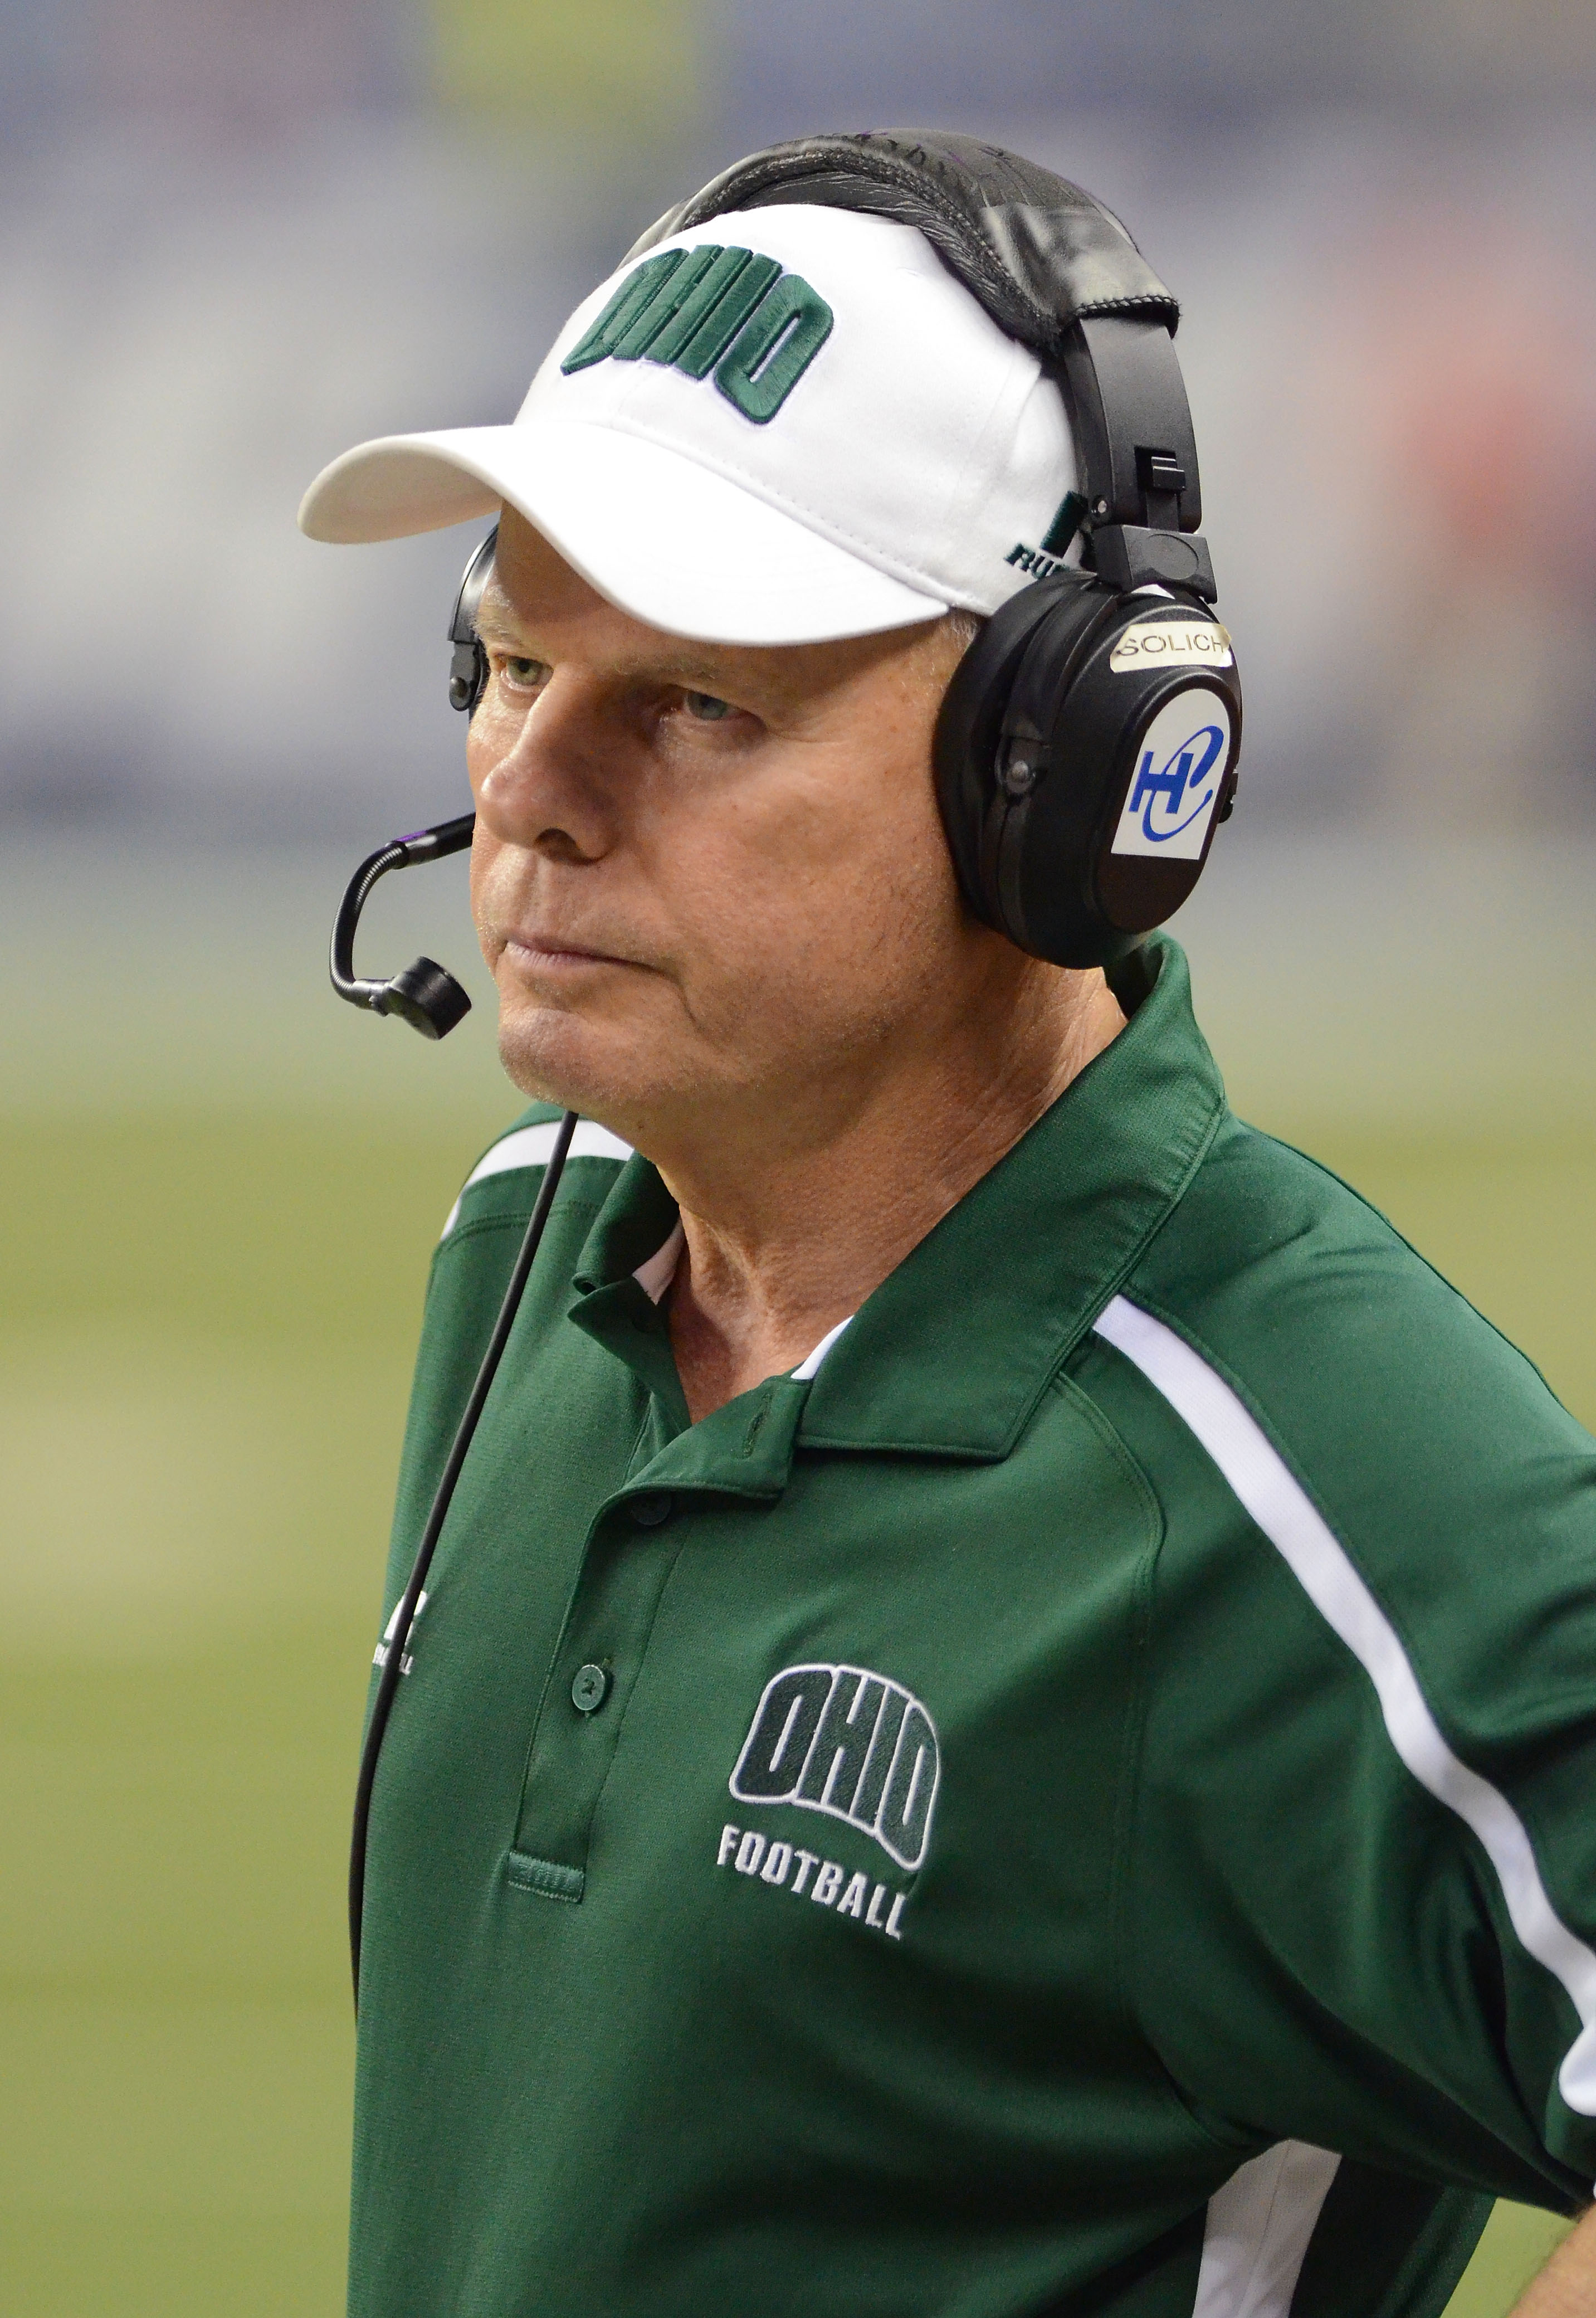 DETROIT, MI - DECEMBER 02: Ohio Bobcats head coach Frank Solich looks on late in the fourth quarter of the MAC Championship game against the Northern Illinois Huskies at Ford Field on December 2, 2011 in Detroit, Michigan. The Huskies defeated the Bobcats 23-20. (Photo by Mark A. Cunningham/Getty Images)